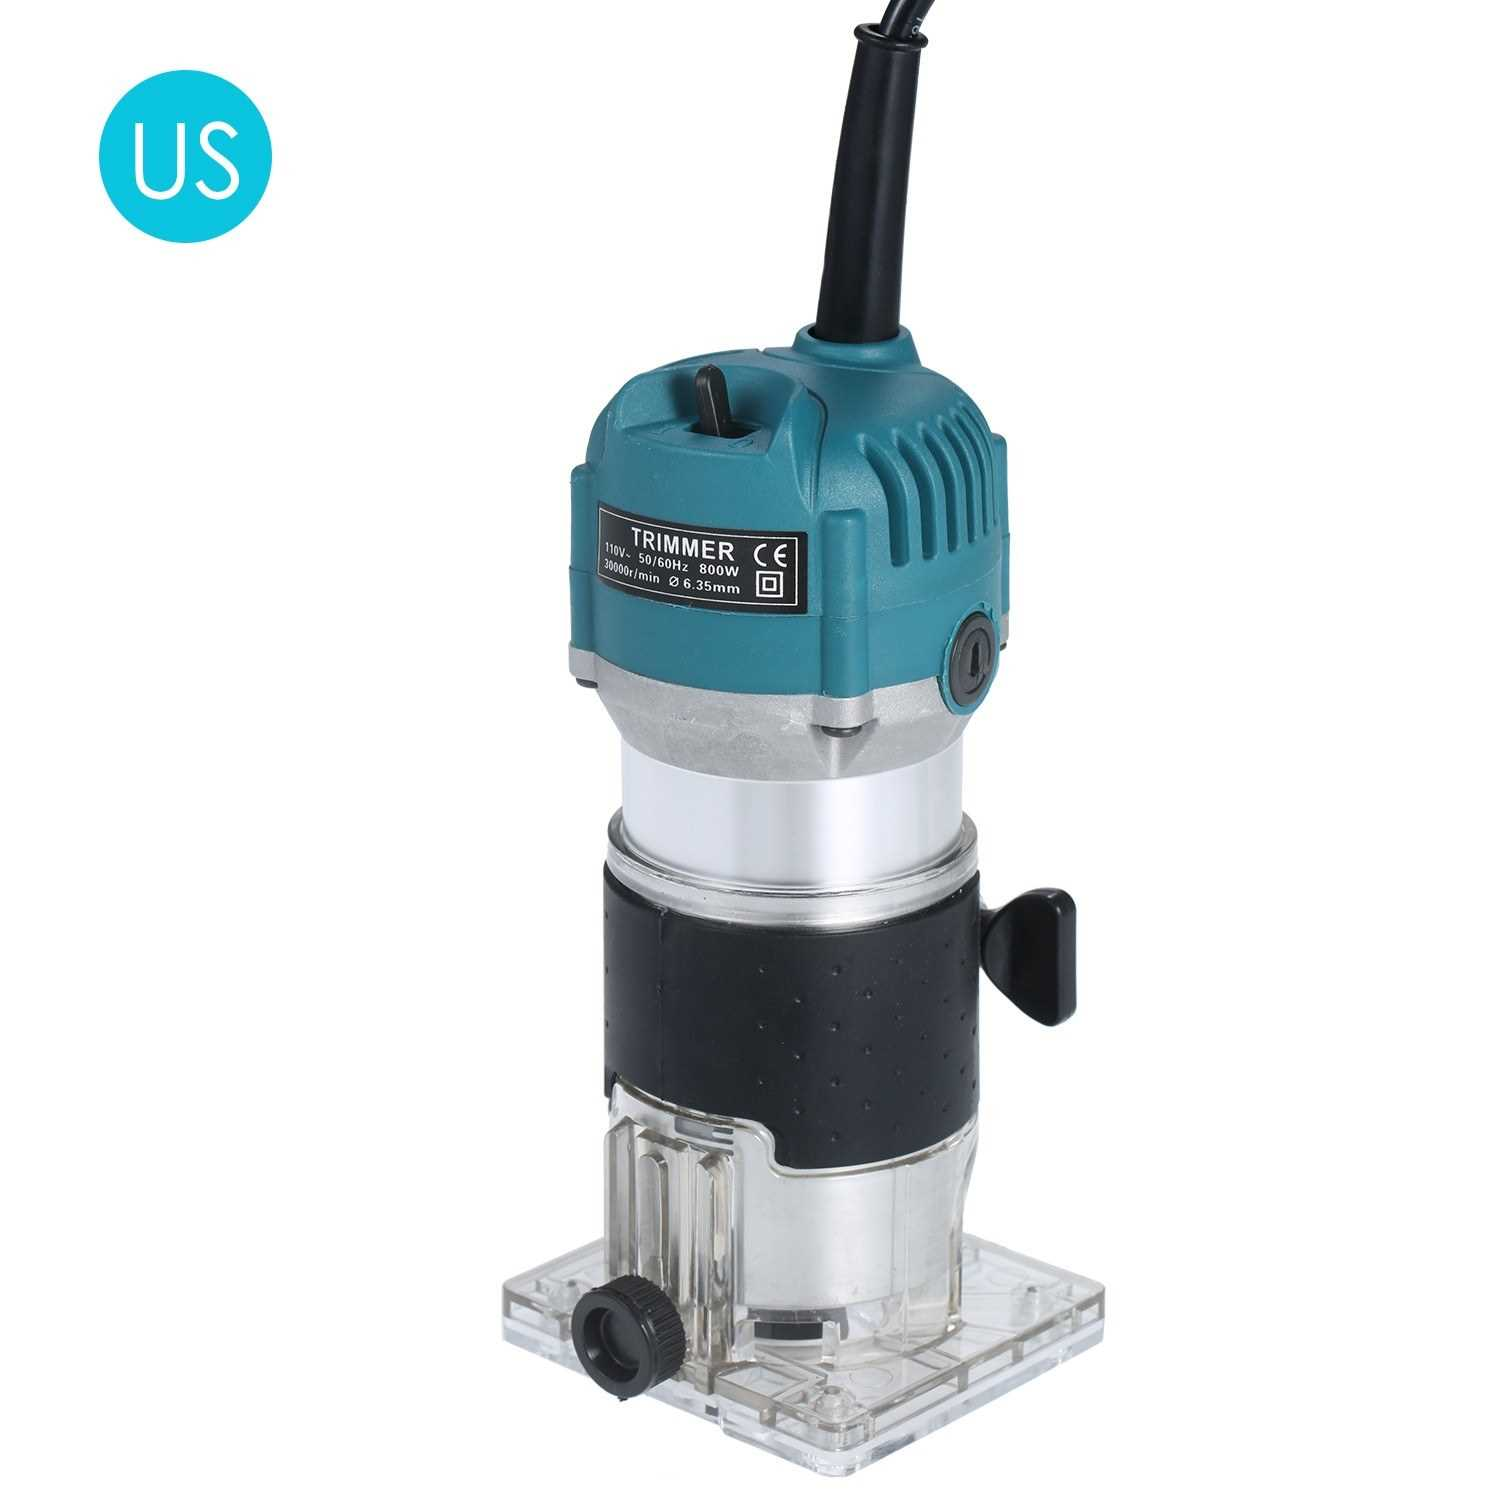 [ Oxford St ] 110V 800W Trim Router 30000r/min with Transparent Base Edge Guide Wood Laminate Electric Trimmer Compact Palm Router Corded for Woodworking Trimming Slotting Notching / Aluminum Blue (Us Plug)